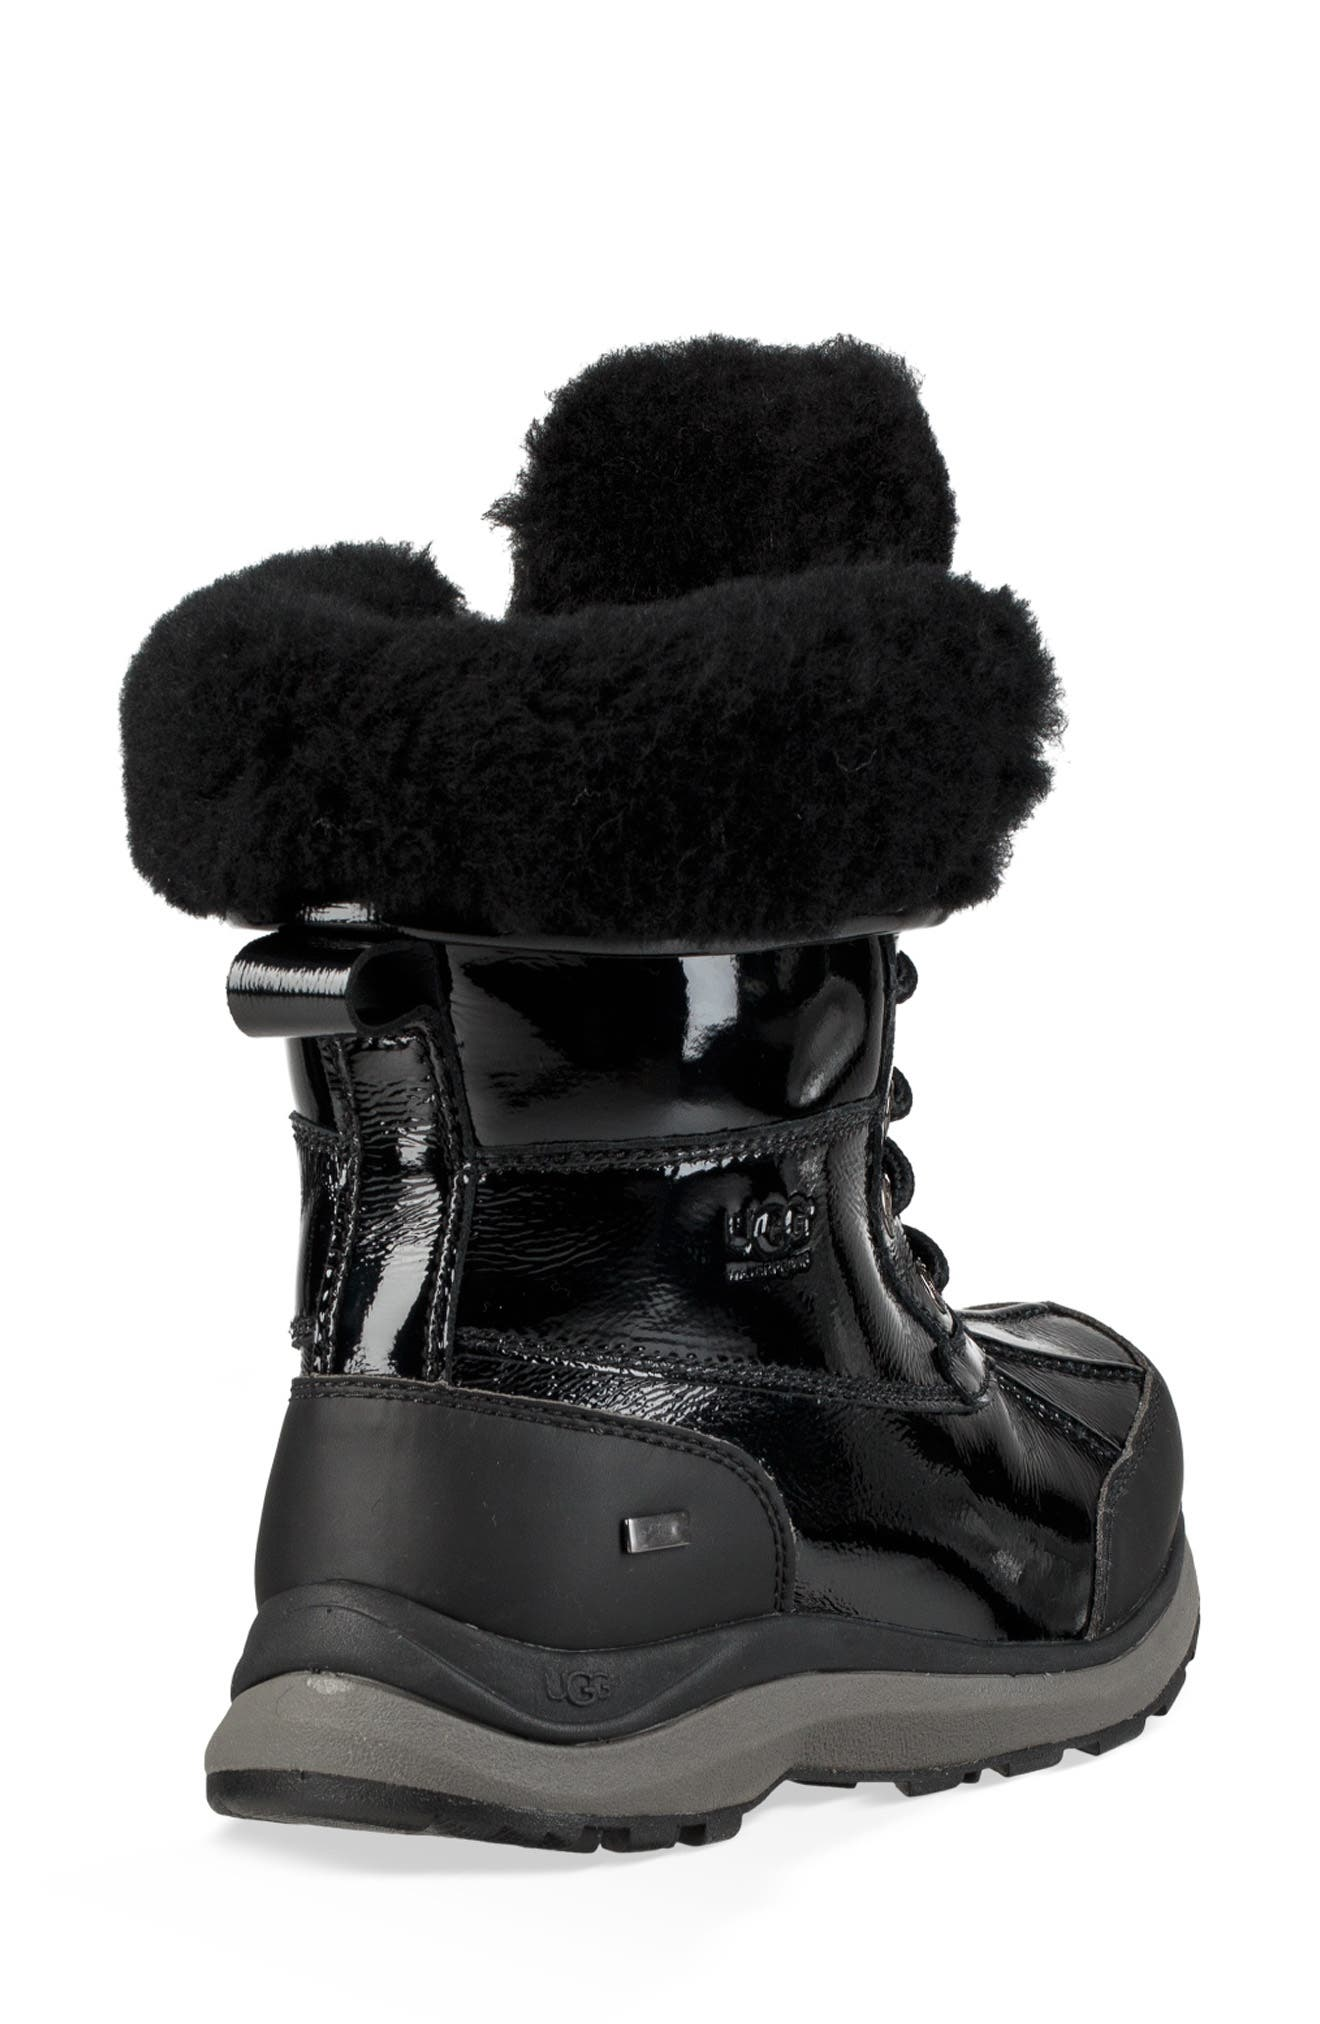 Adirondack III Waterproof Insulated Patent Winter Boot,                             Alternate thumbnail 2, color,                             001